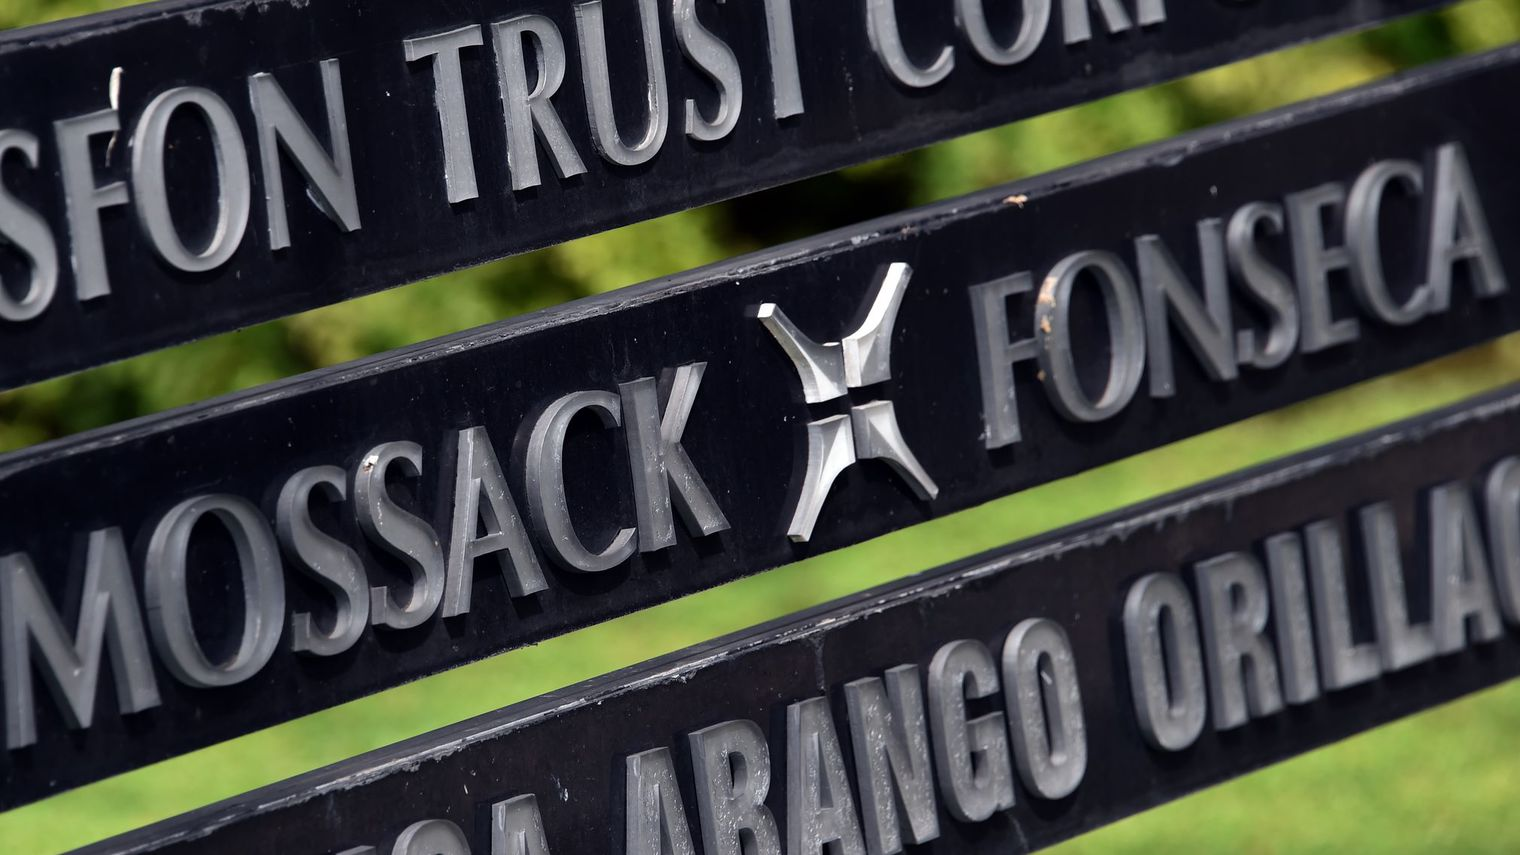 Affaire des «Panama papers»: le cabinet Mossack Fonseca, la face visible de l'iceberg